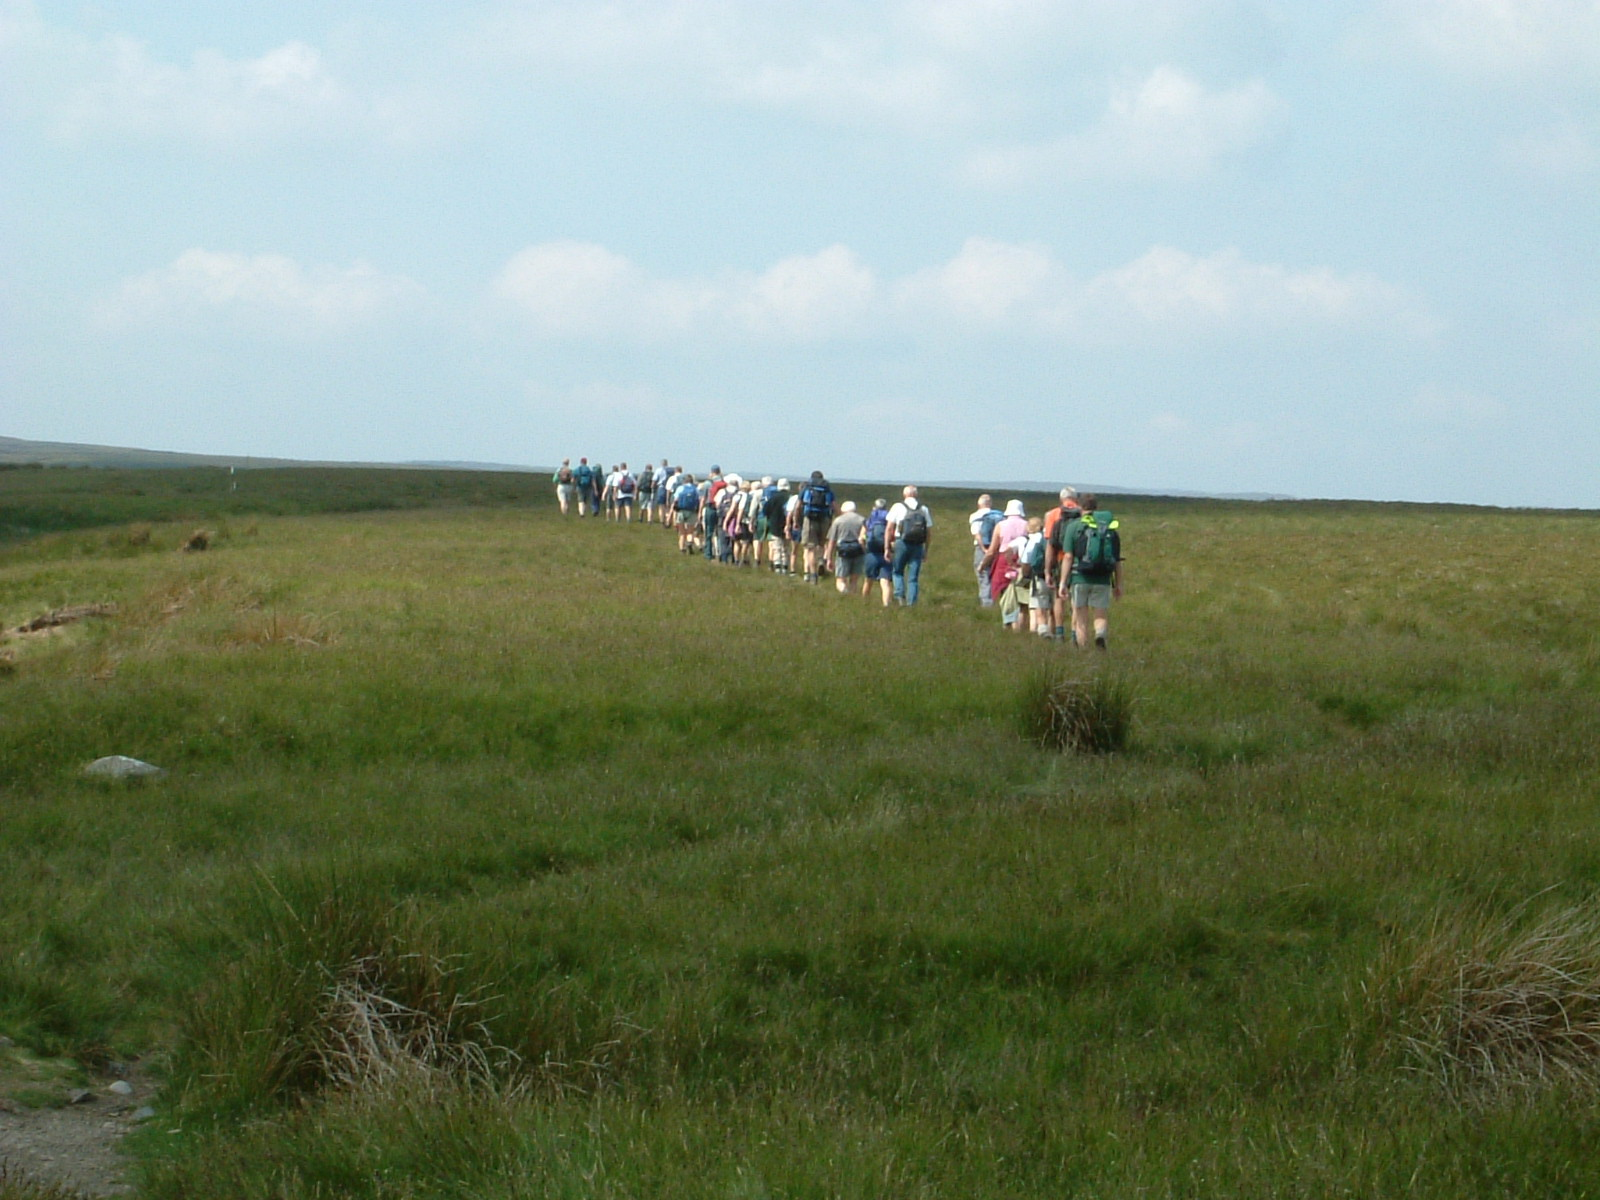 A large party of walkers on Sleightholme Moor